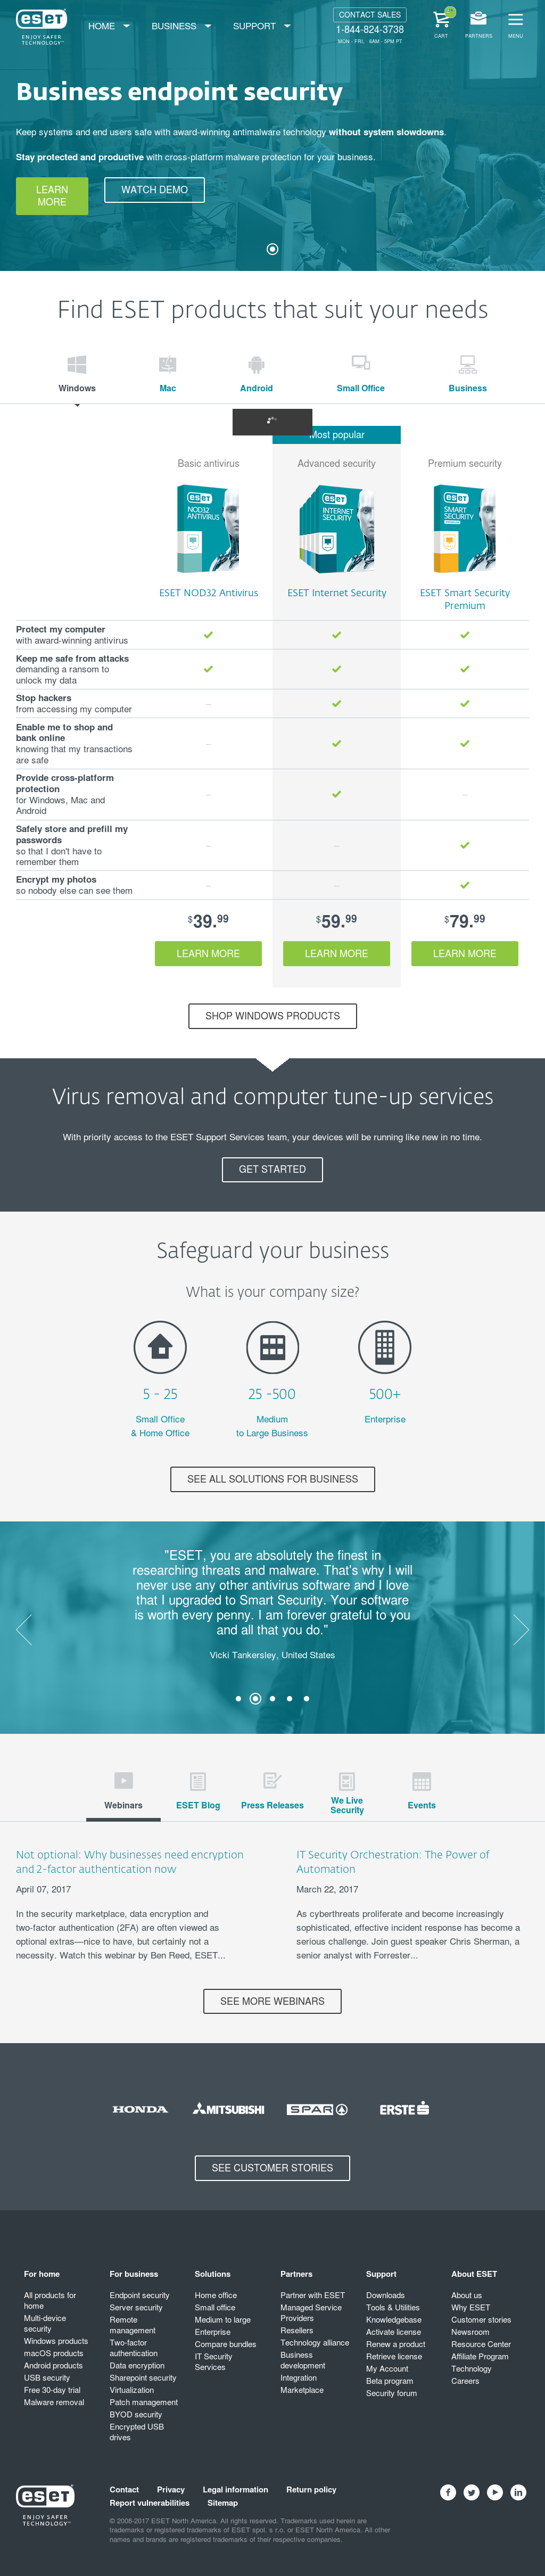 ESET Competitors, Revenue and Employees - Owler Company Profile